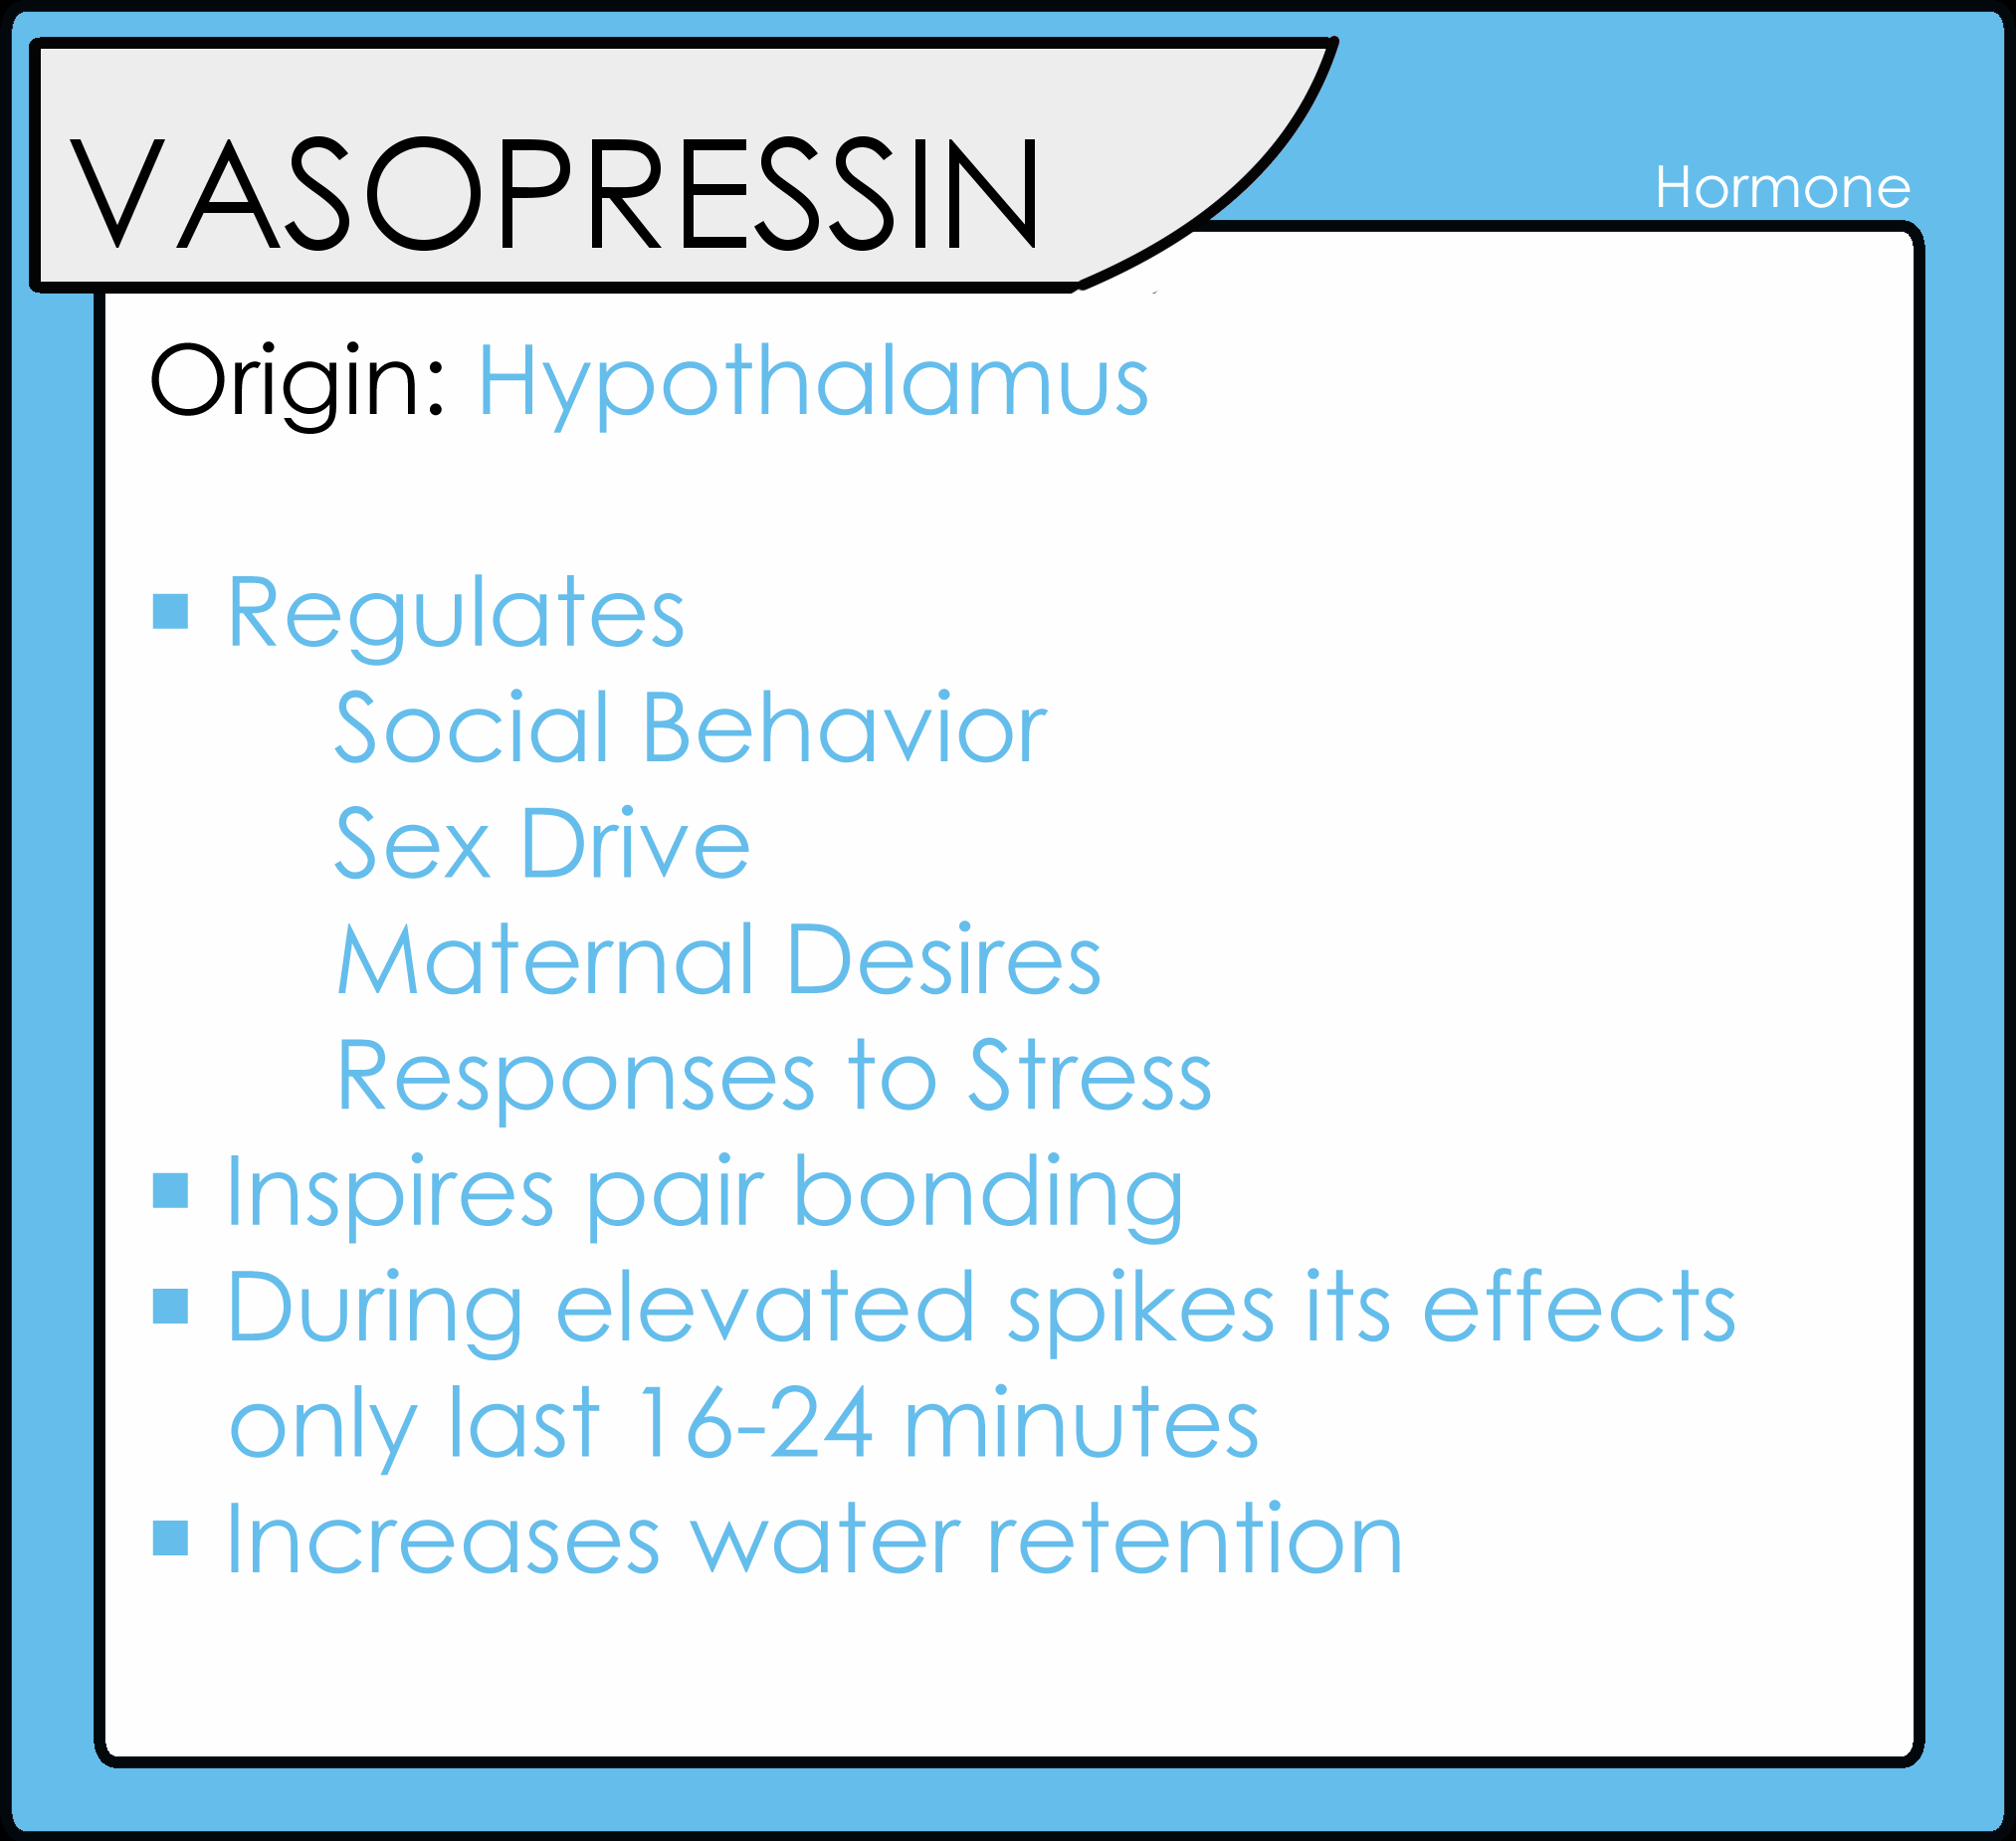 vasopressin-facts